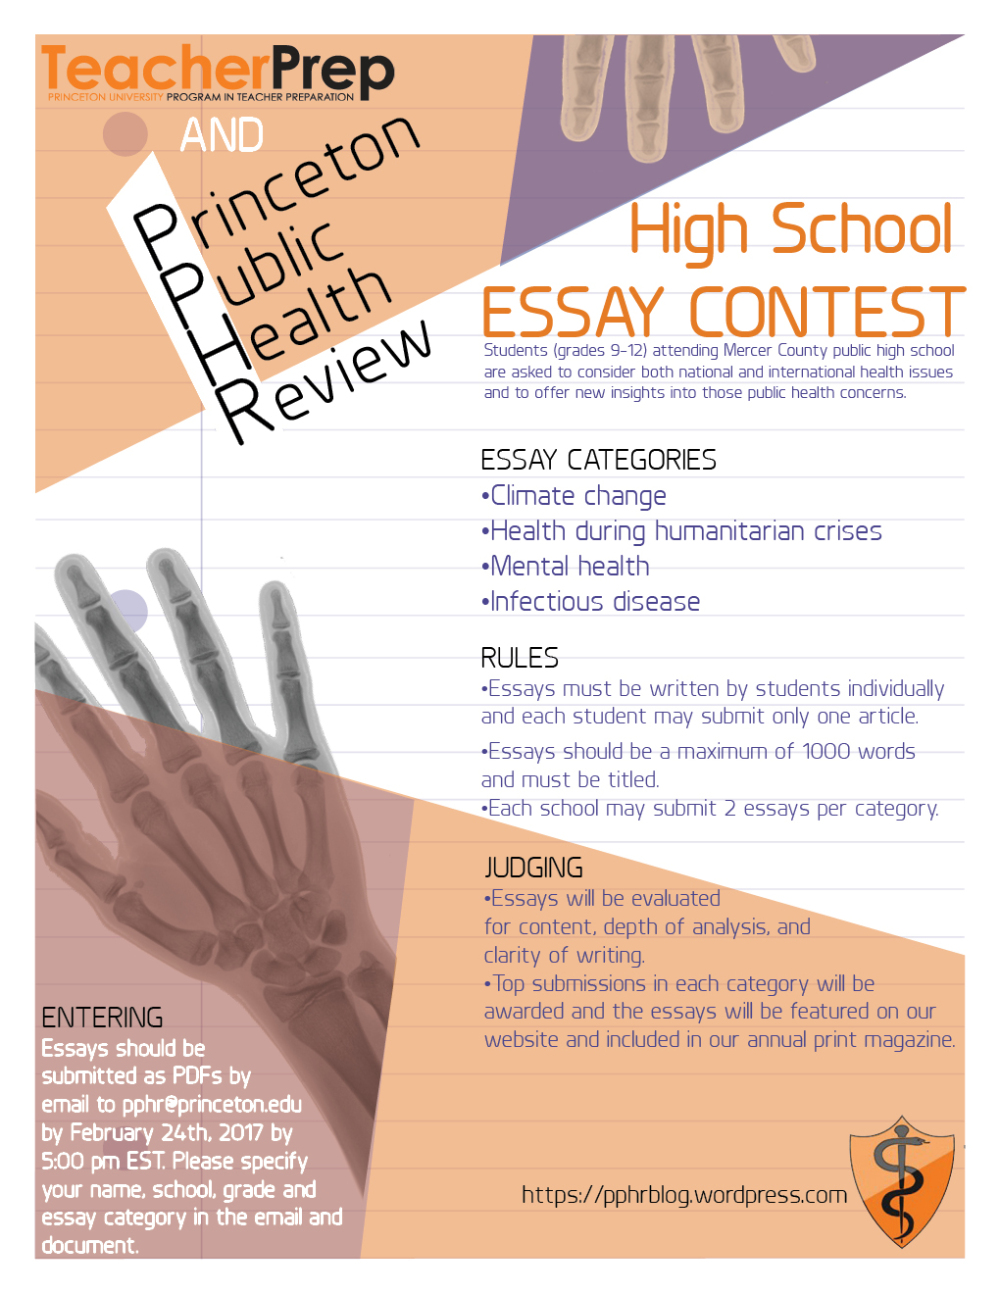 011 Essay Contests For High School Students Pphressaycontestfeb24w1000 Staggering 2017 Full